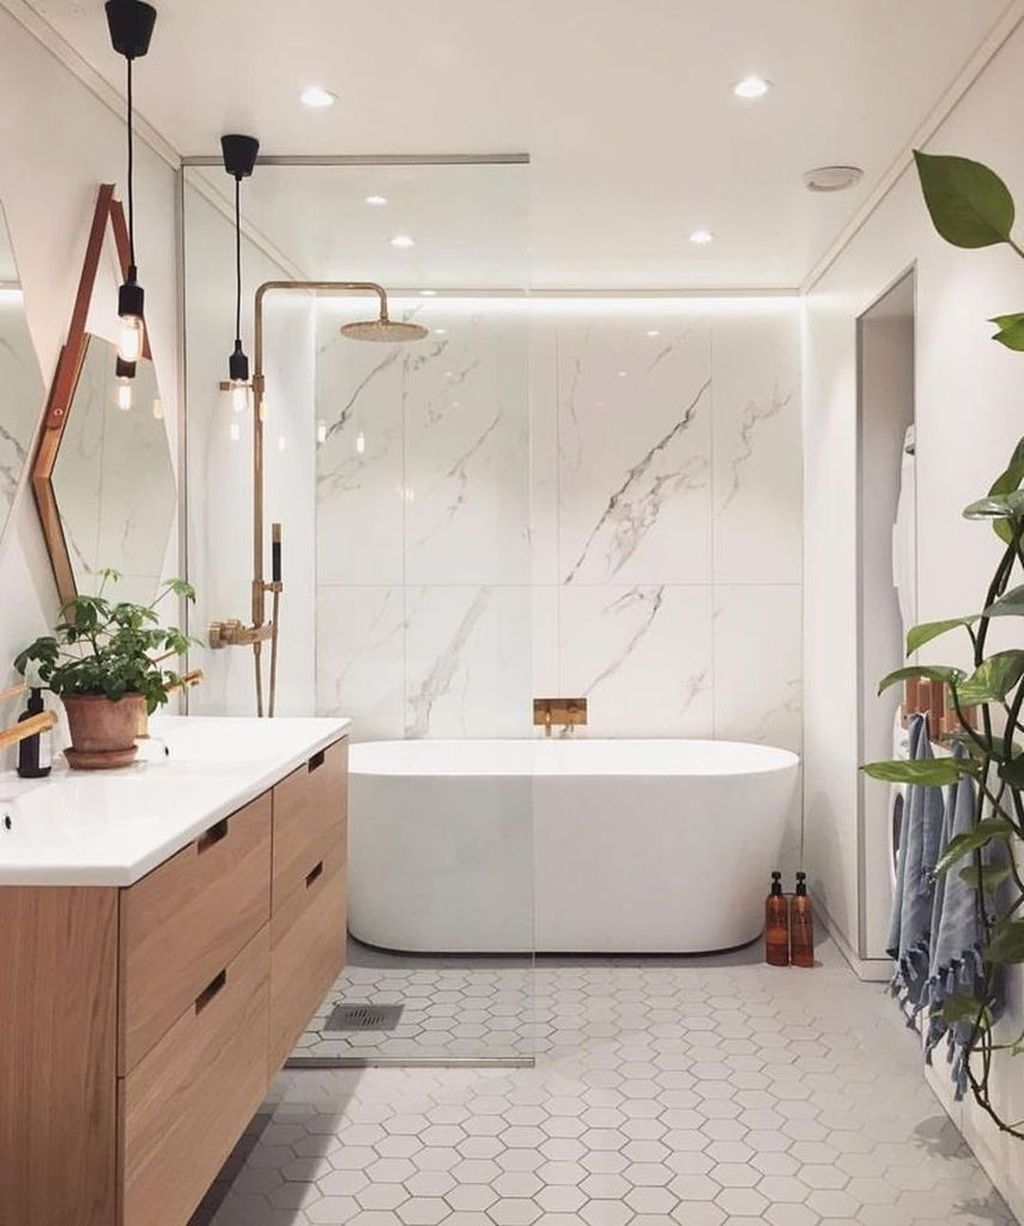 Inspiring Bathroom Interior Design Ideas 33